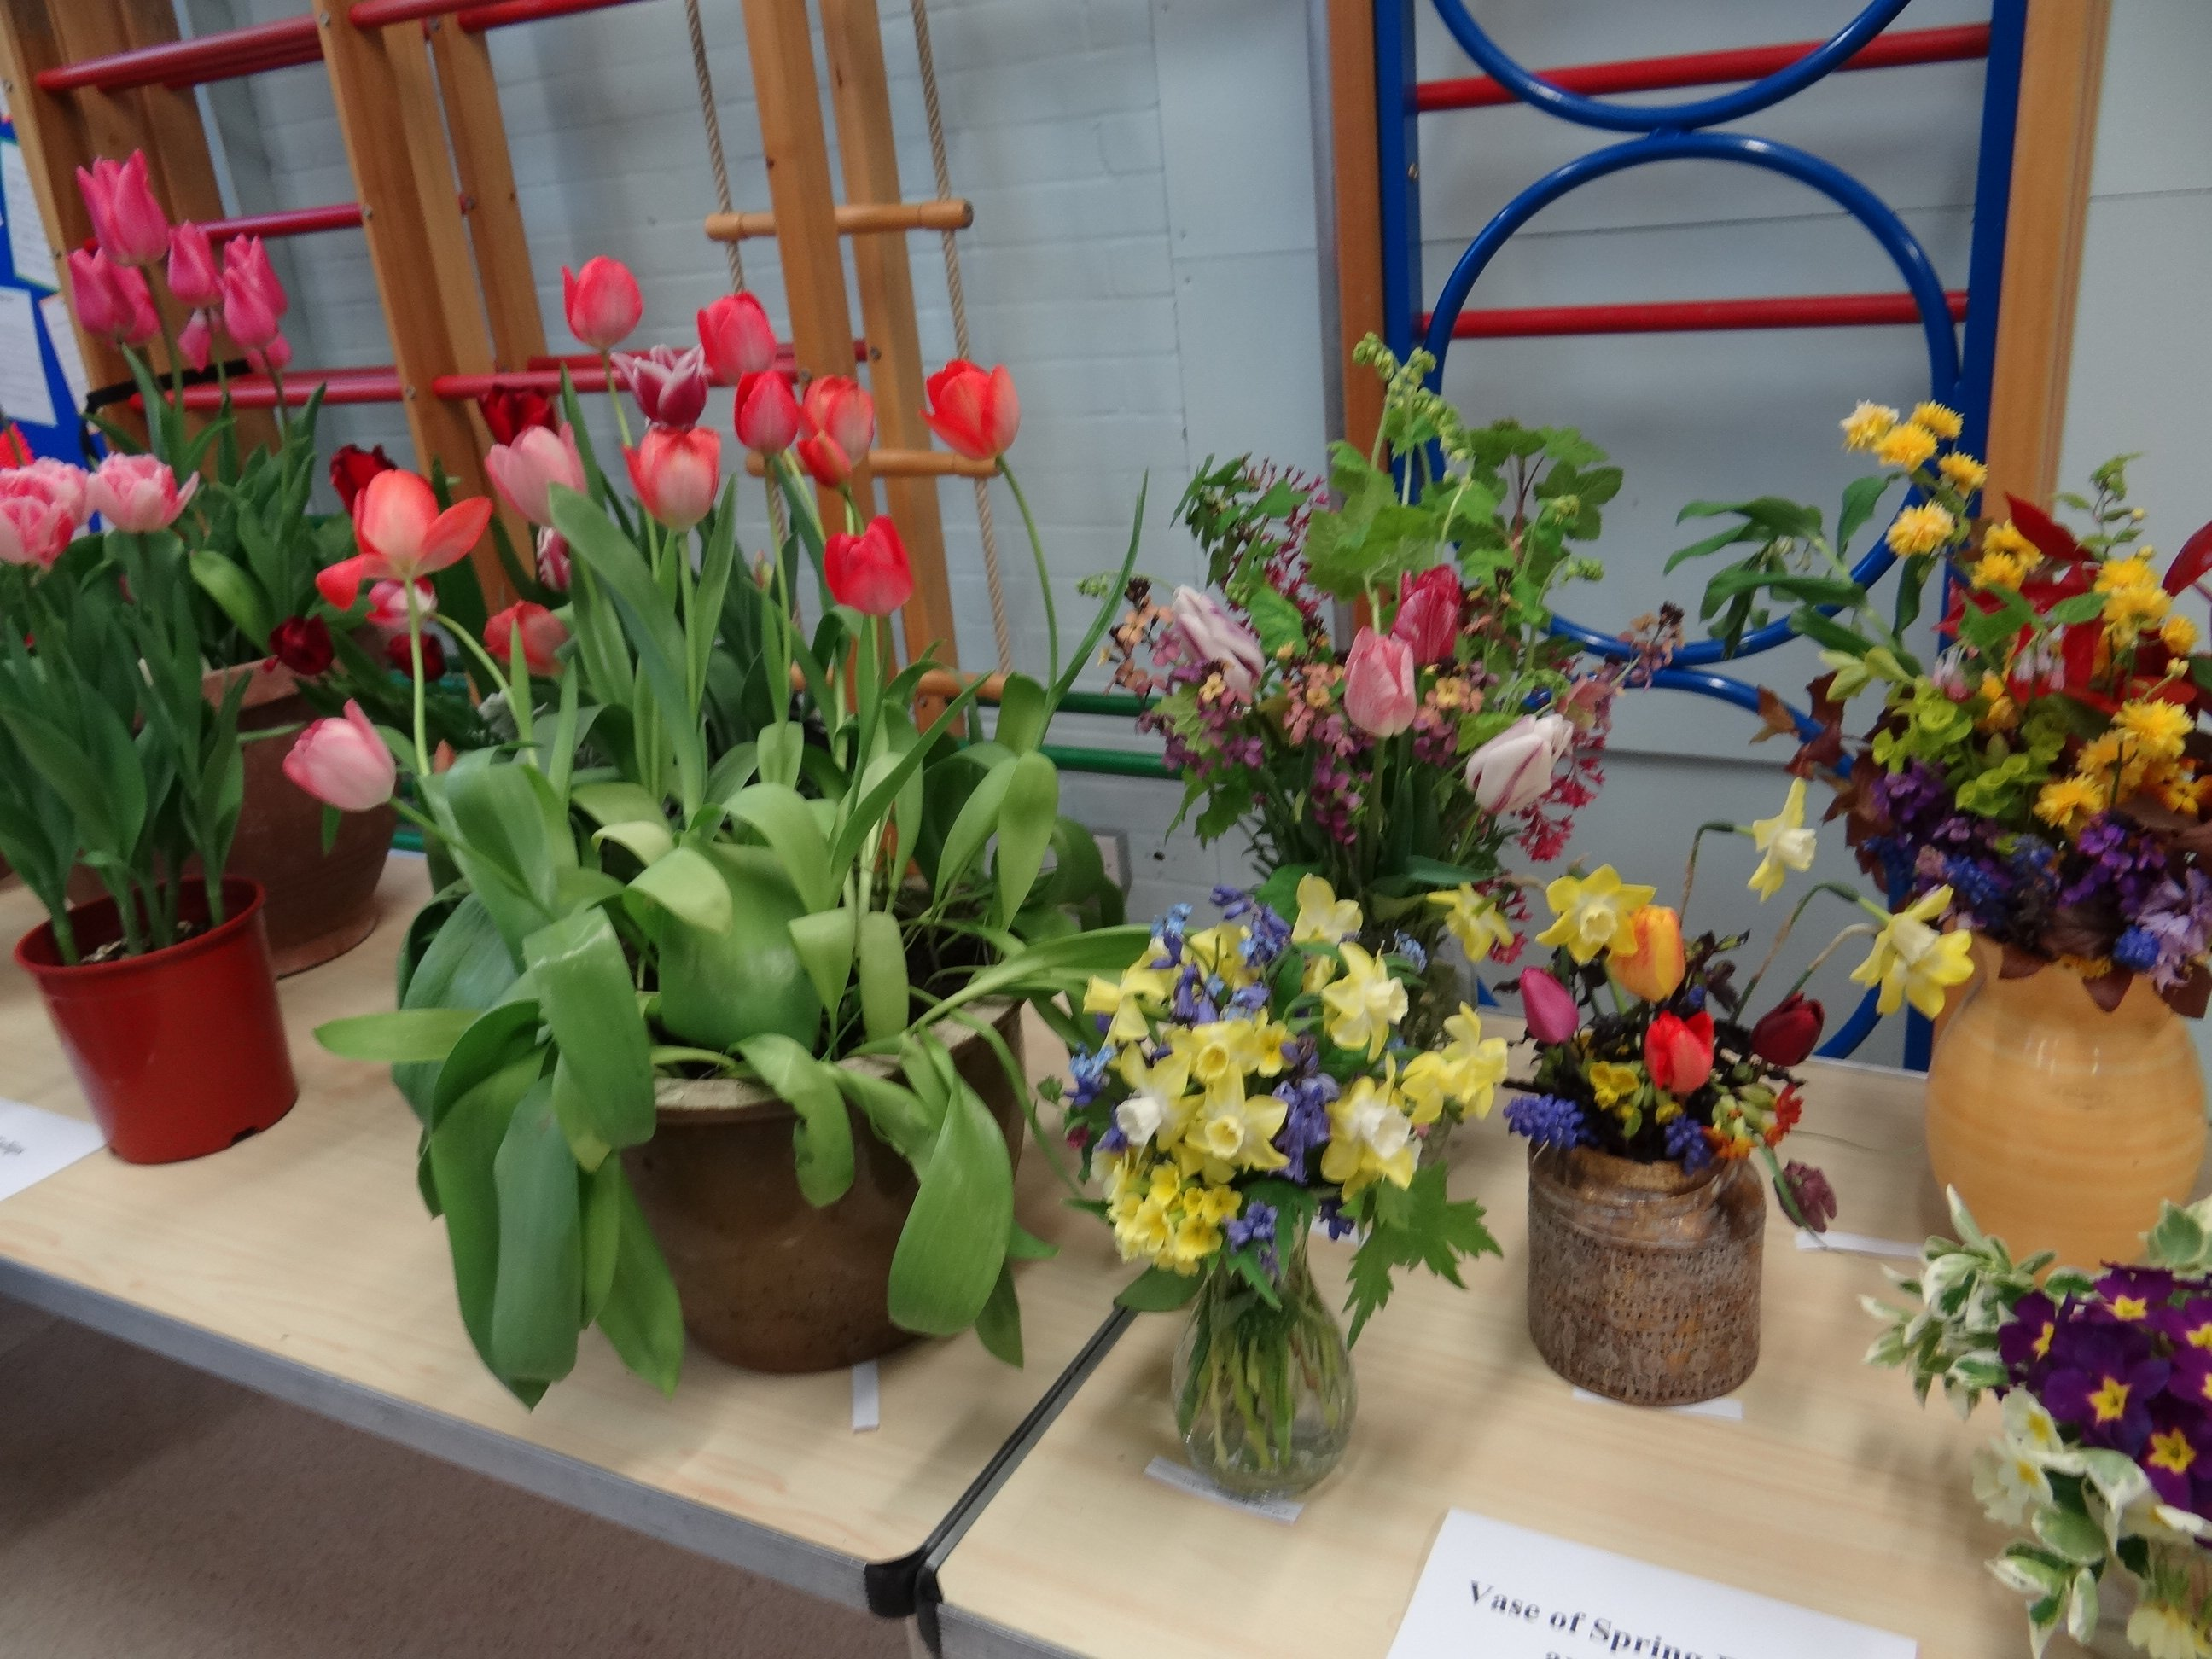 Clanfield Show – highlight of the gardening year